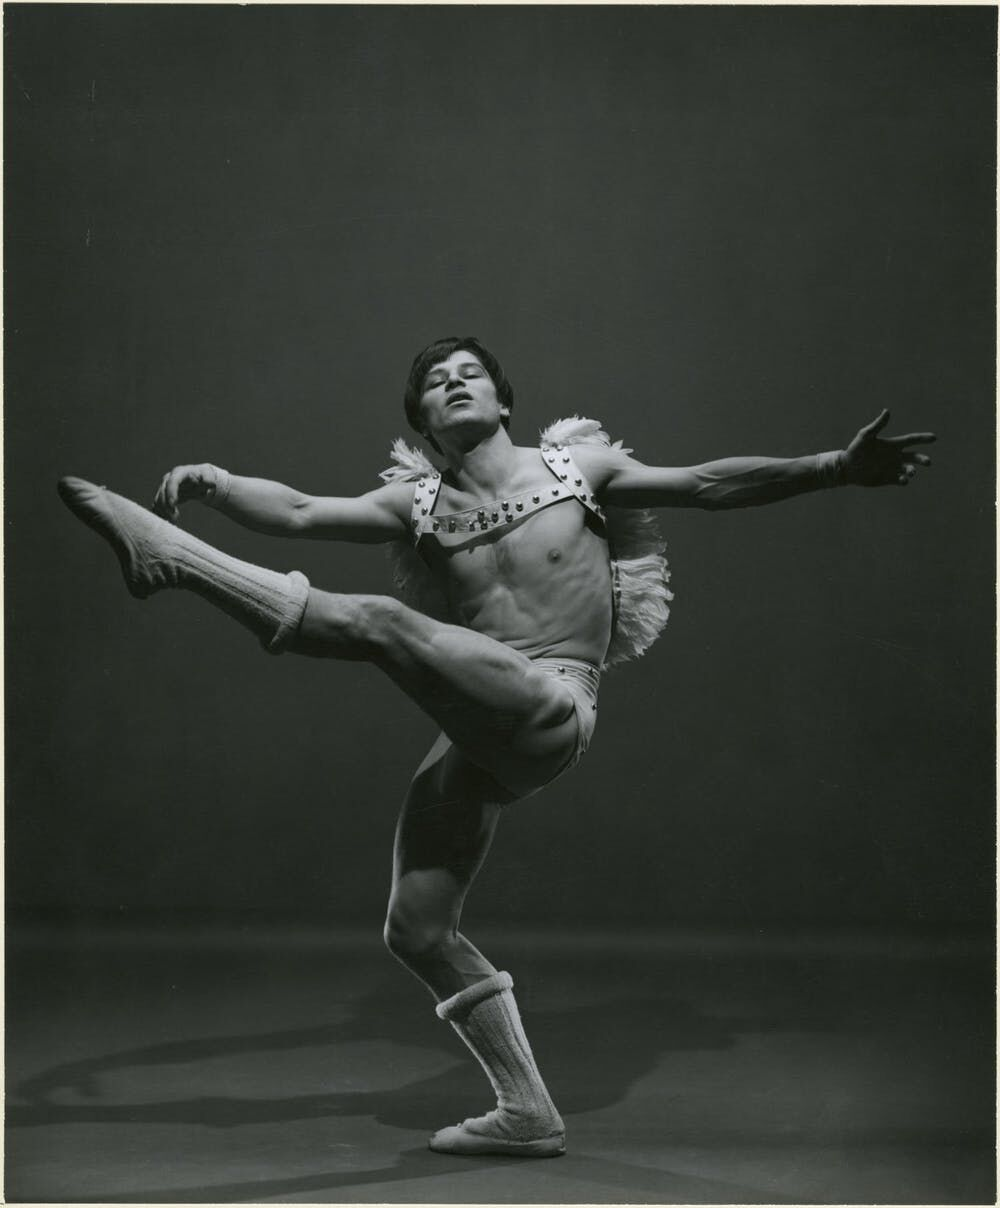 George Platt Lynes's 1951 photograph of ballet performer Jean Babilee in 'L'Amour et son Amour.' Gelatin silver print, 10-1/2 × 12-1/2 in. From the Collections of the Kinsey Institute, Indiana University. © Estate of George Platt Lynes.